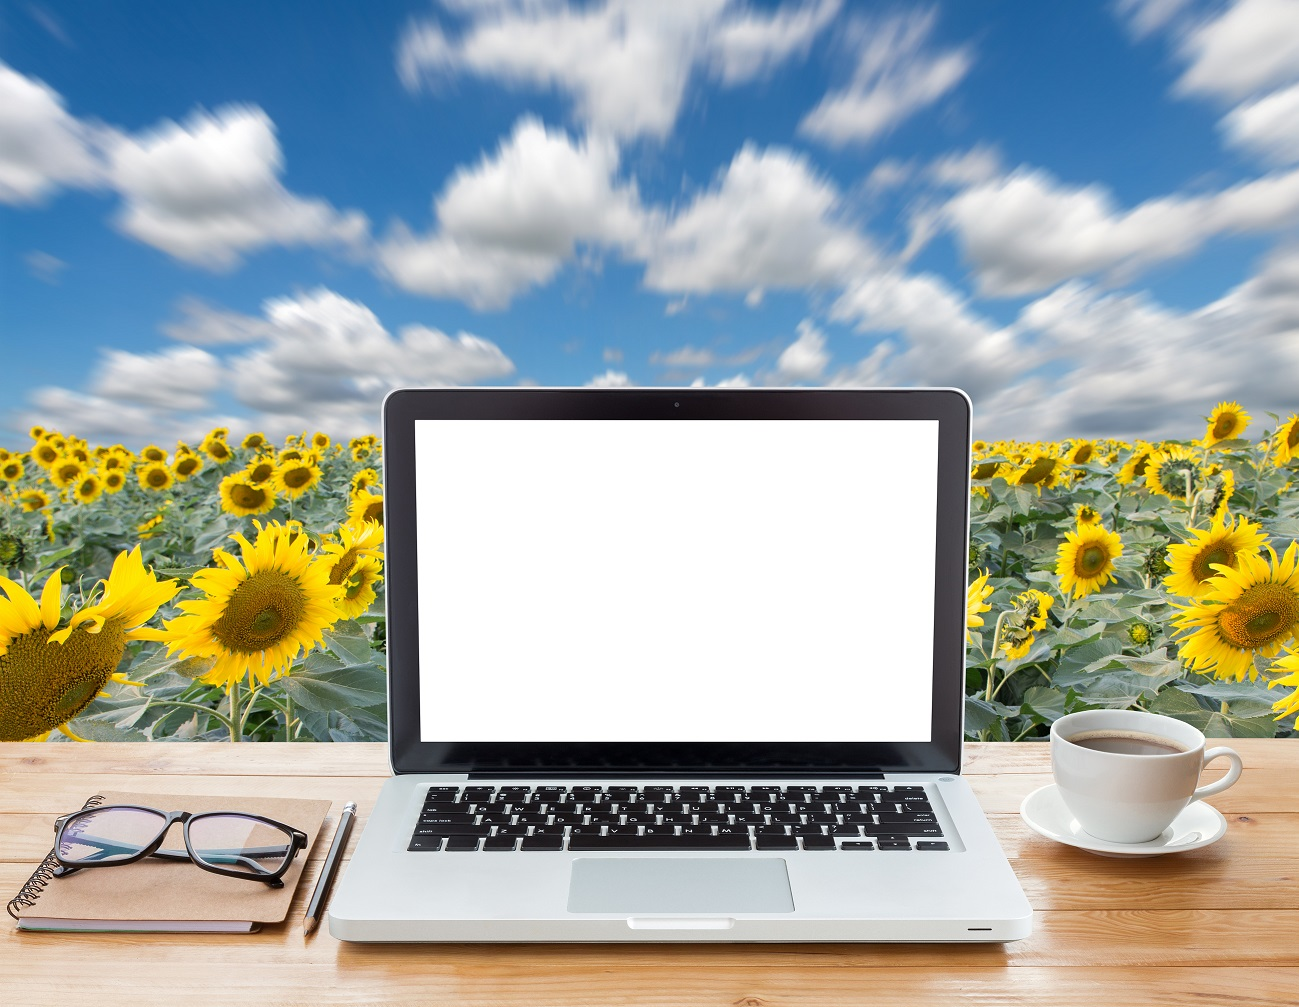 Picture of laptop, glasses and coffee cup on desk with sunflowers and sky in background.